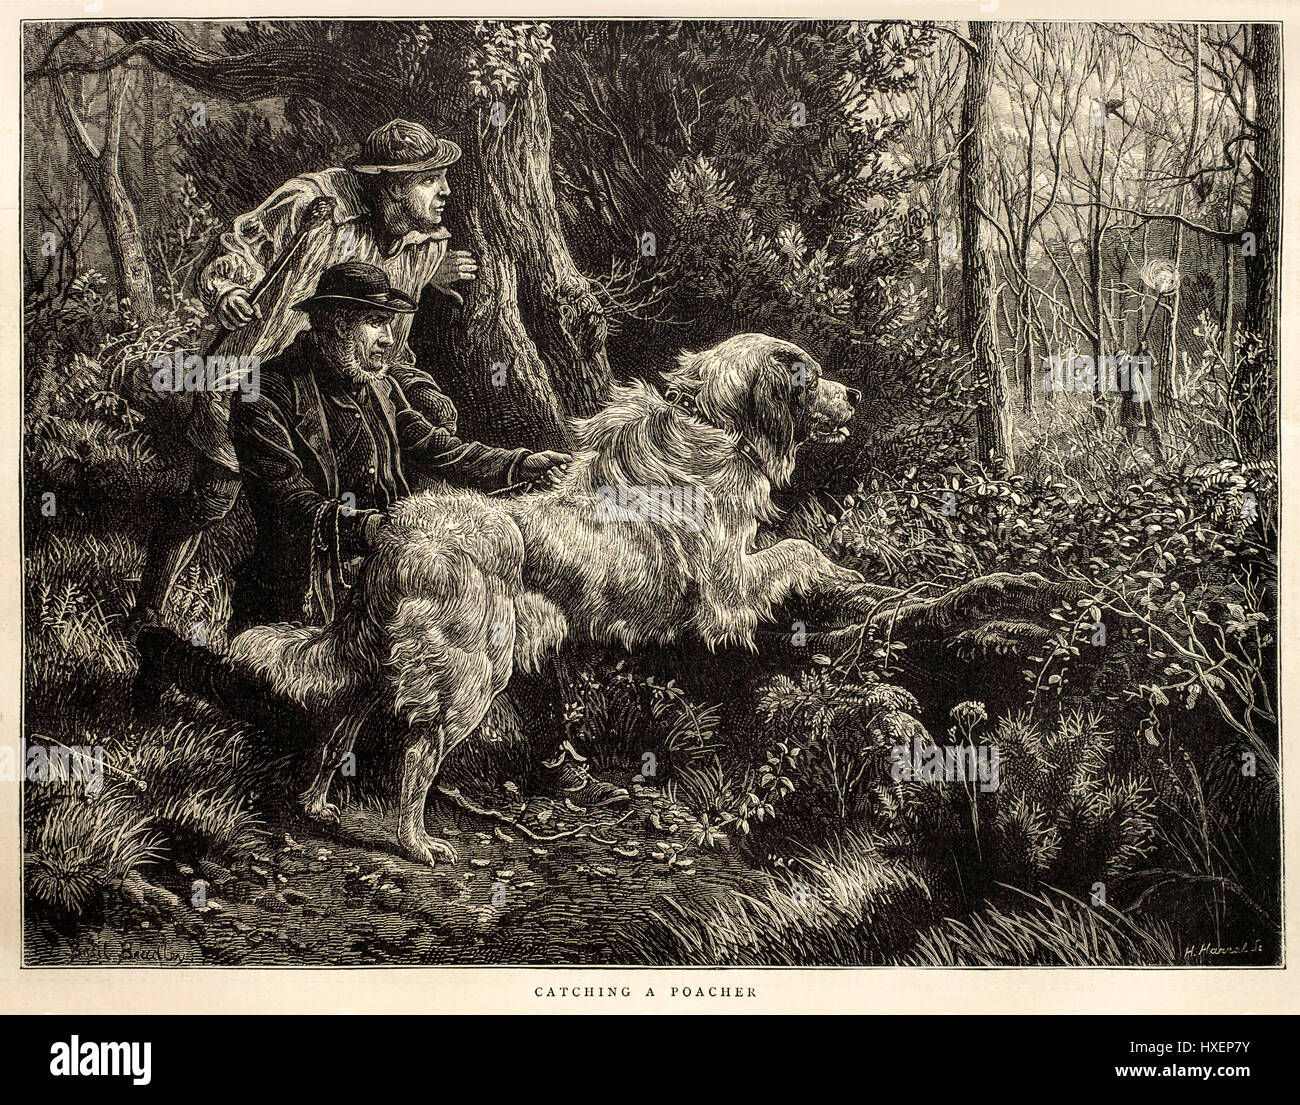 1874 antique Victorian illustration 'Catching a Poacher' by Horace Harral from 'The Graphic' weekly - Stock Image